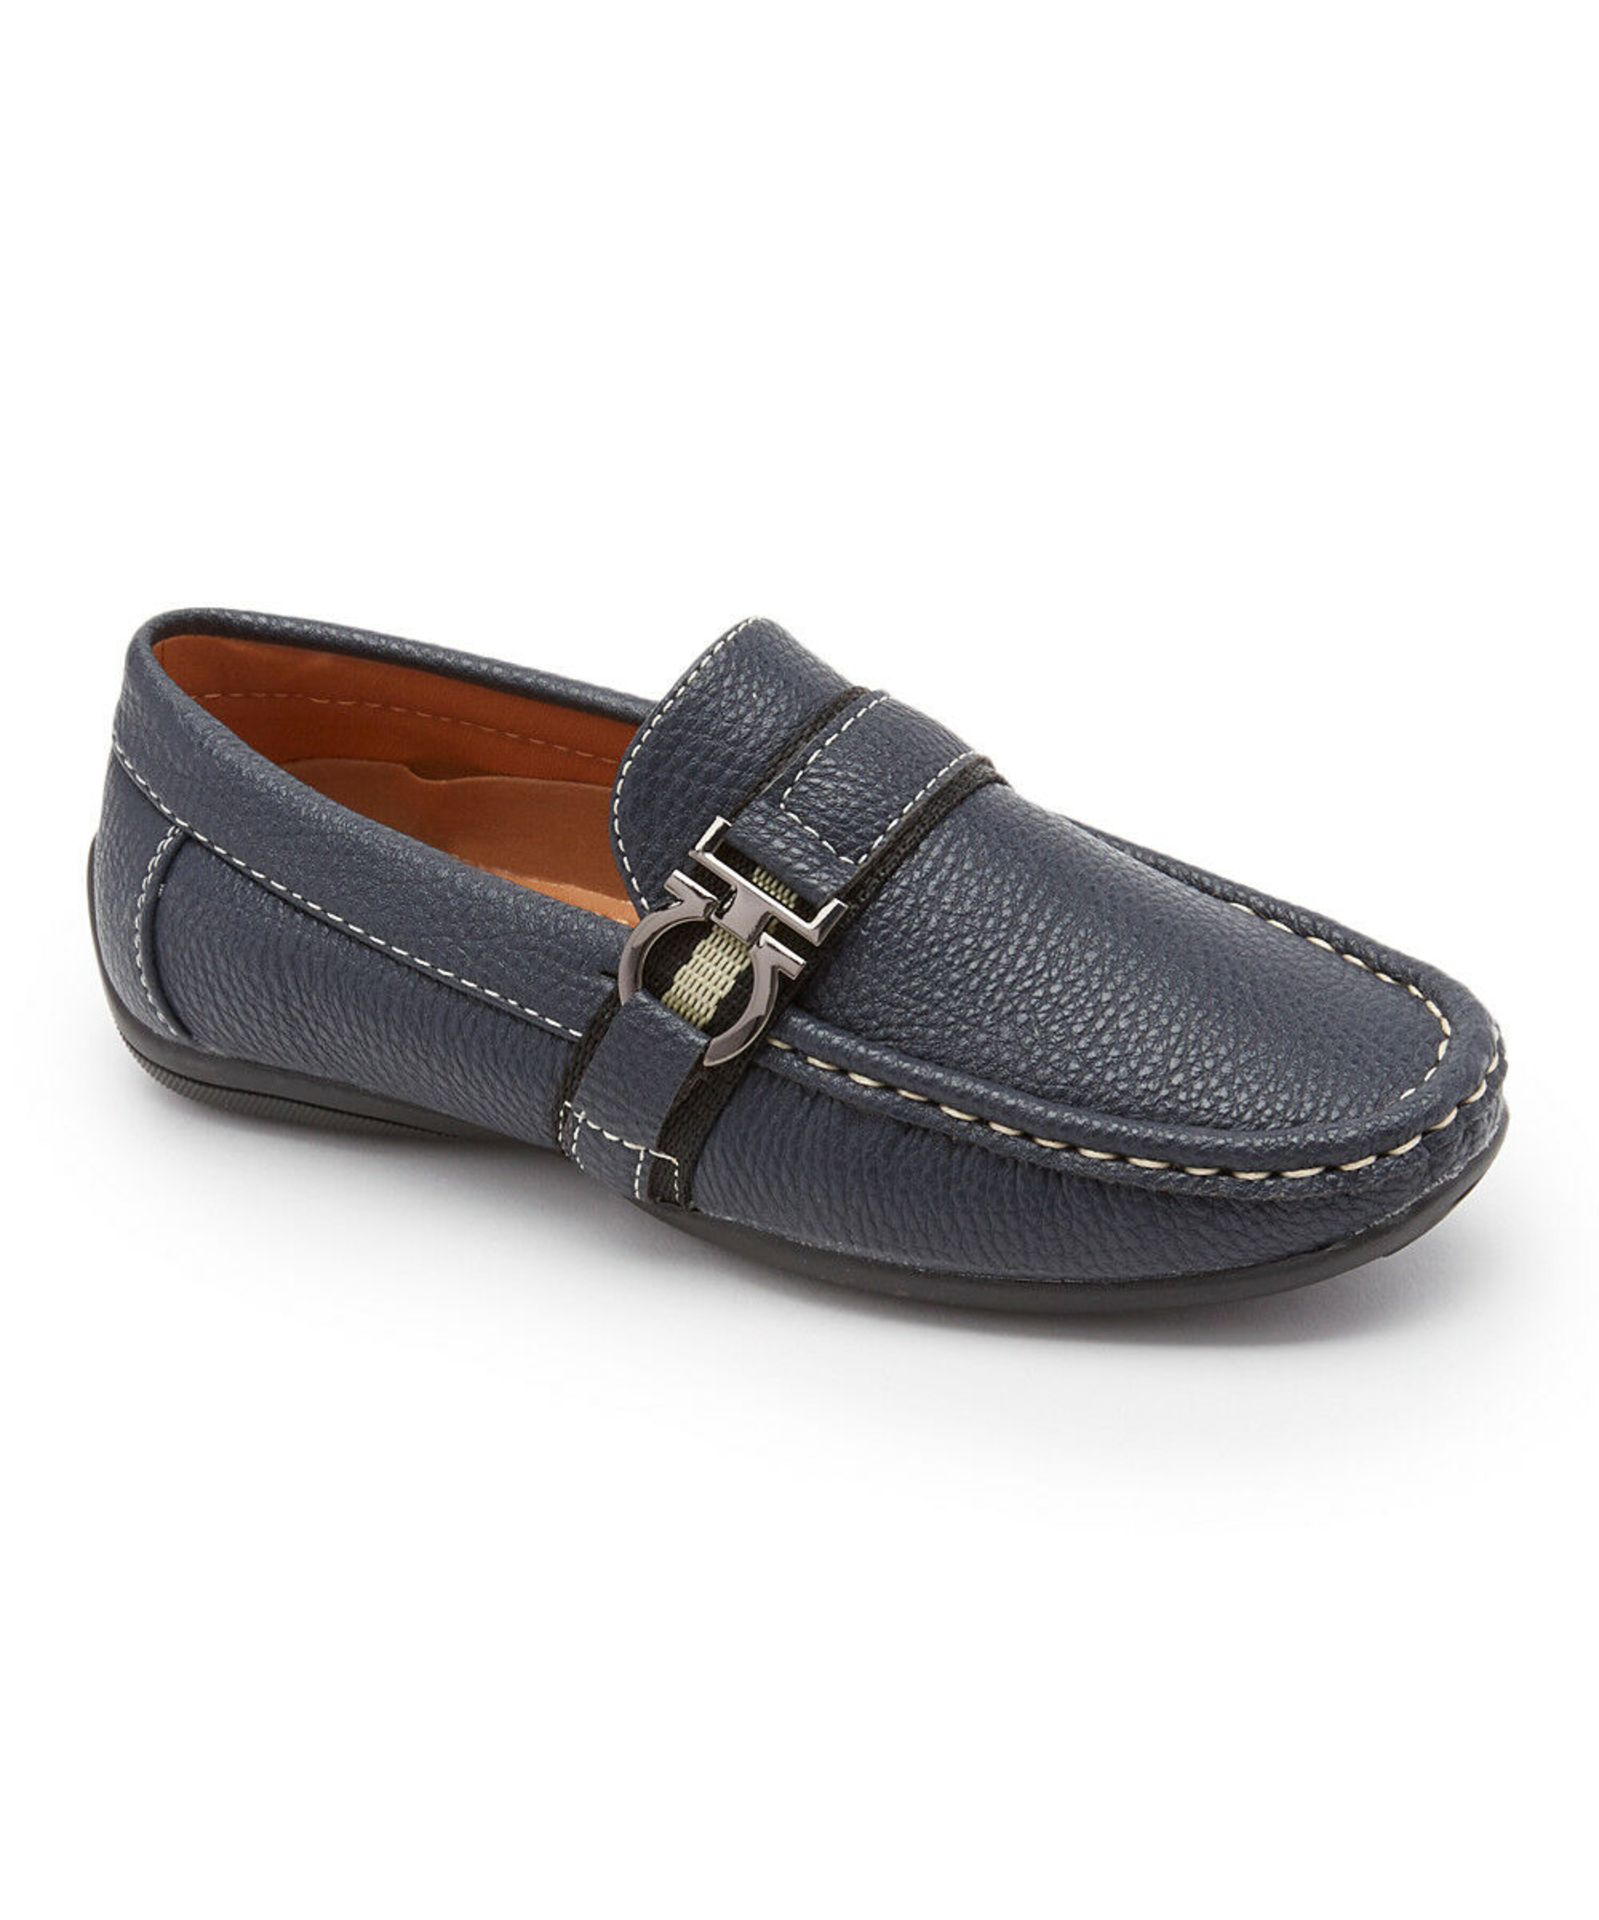 Lot 34 - Axny Navy Side-Buckle Loafer (Uk Size:3/Us Size:4) (New With Box) [Ref: 36688399-M-002]